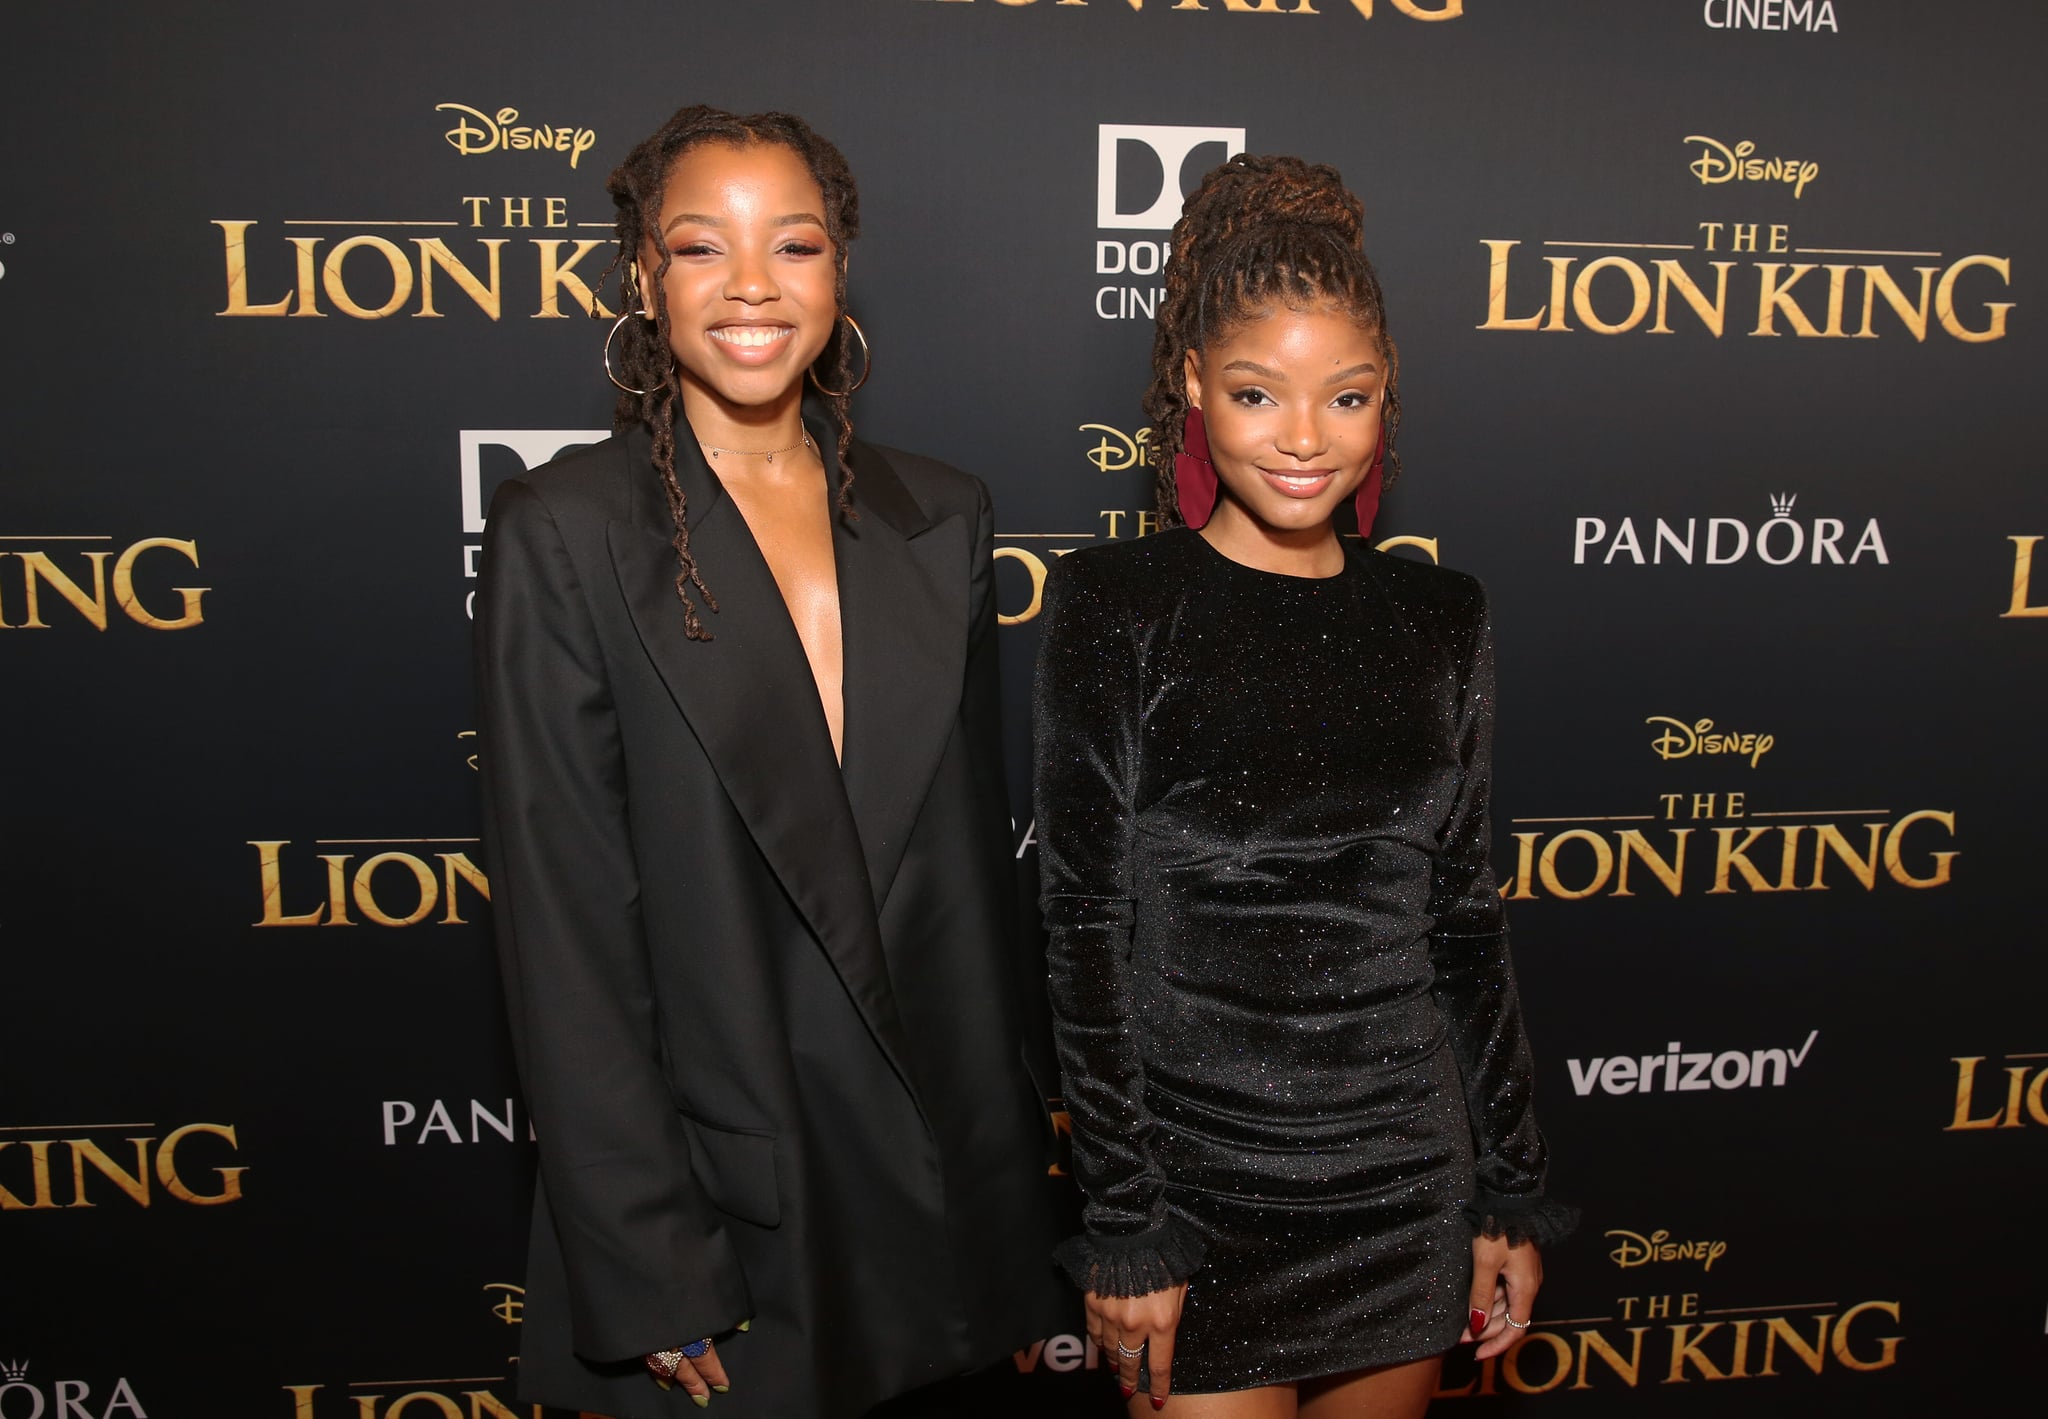 HOLLYWOOD, CALIFORNIA - JULY 09: Chloe Bailey (L) and Halle Bailey attend the World Premiere of Disney's